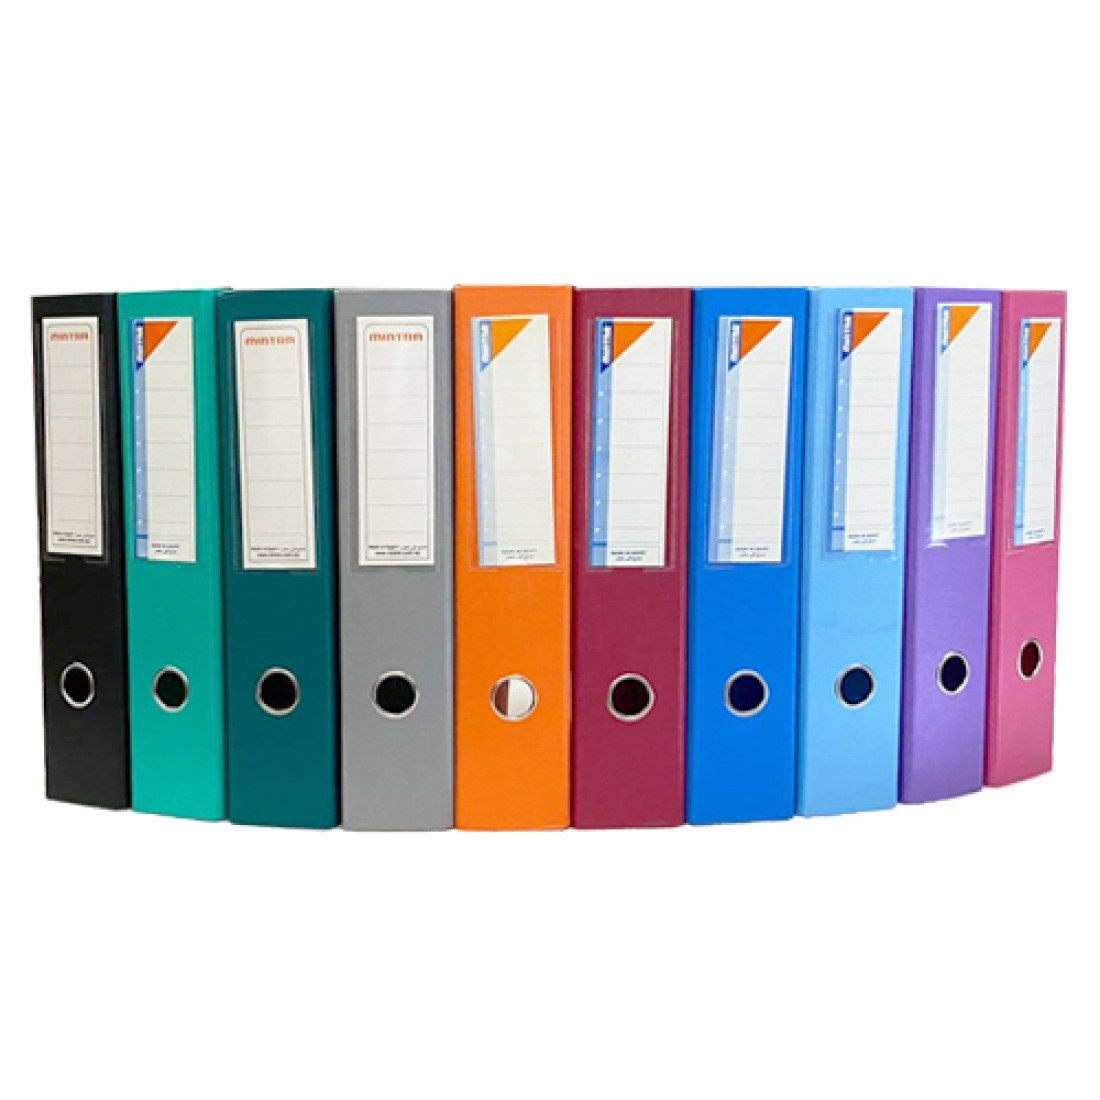 Box File, MINTRA, Lever Arch File, 2-Ring Binder, Cardboard, 70mm, A4, Light Blue